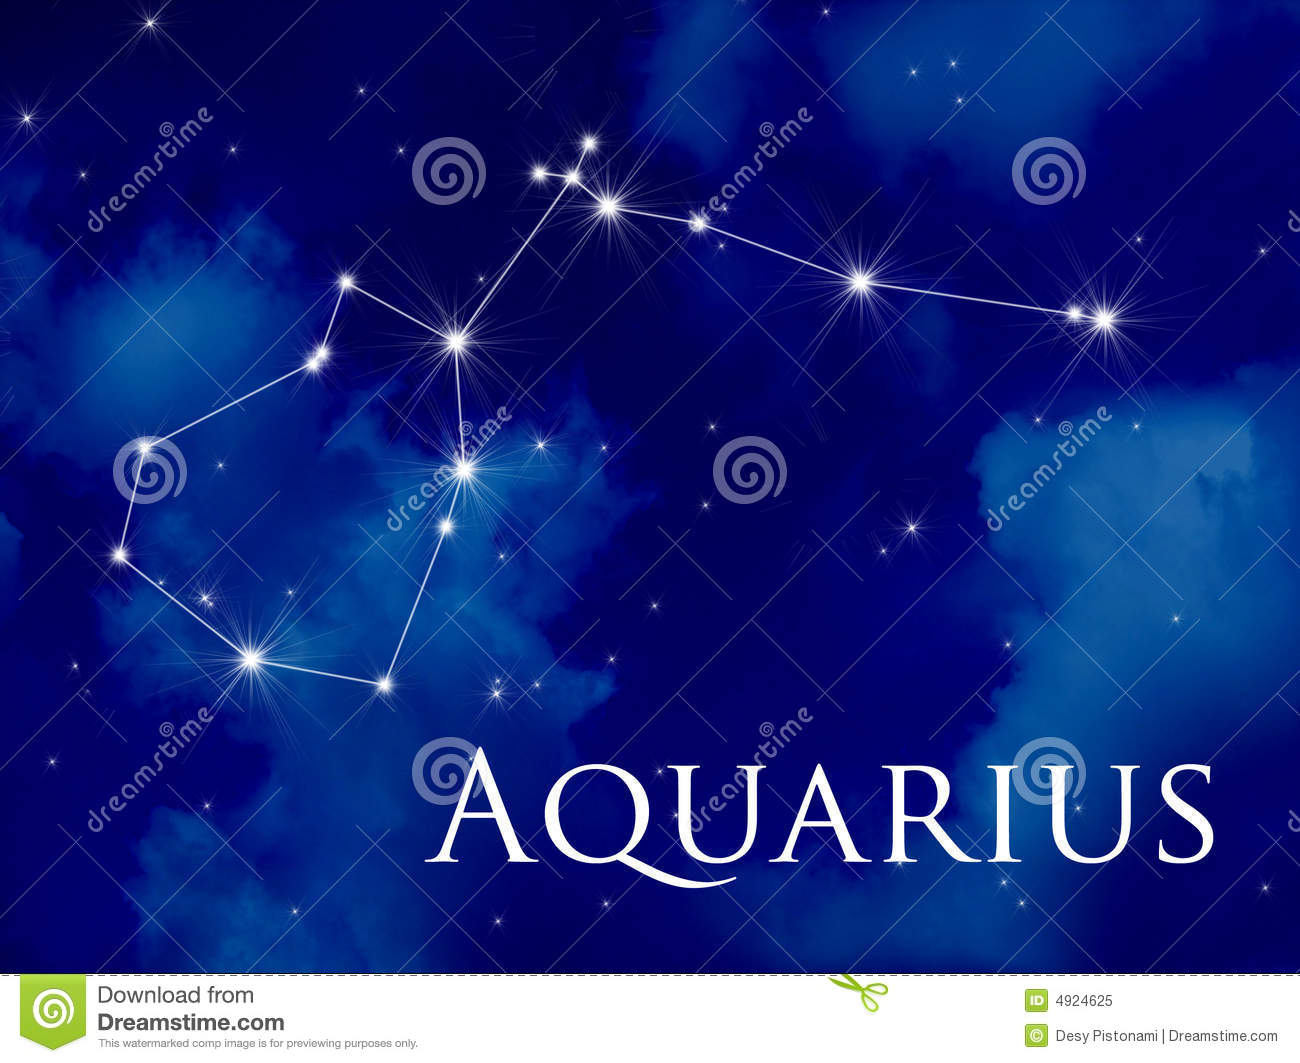 Aquarius Constellation Tattoo